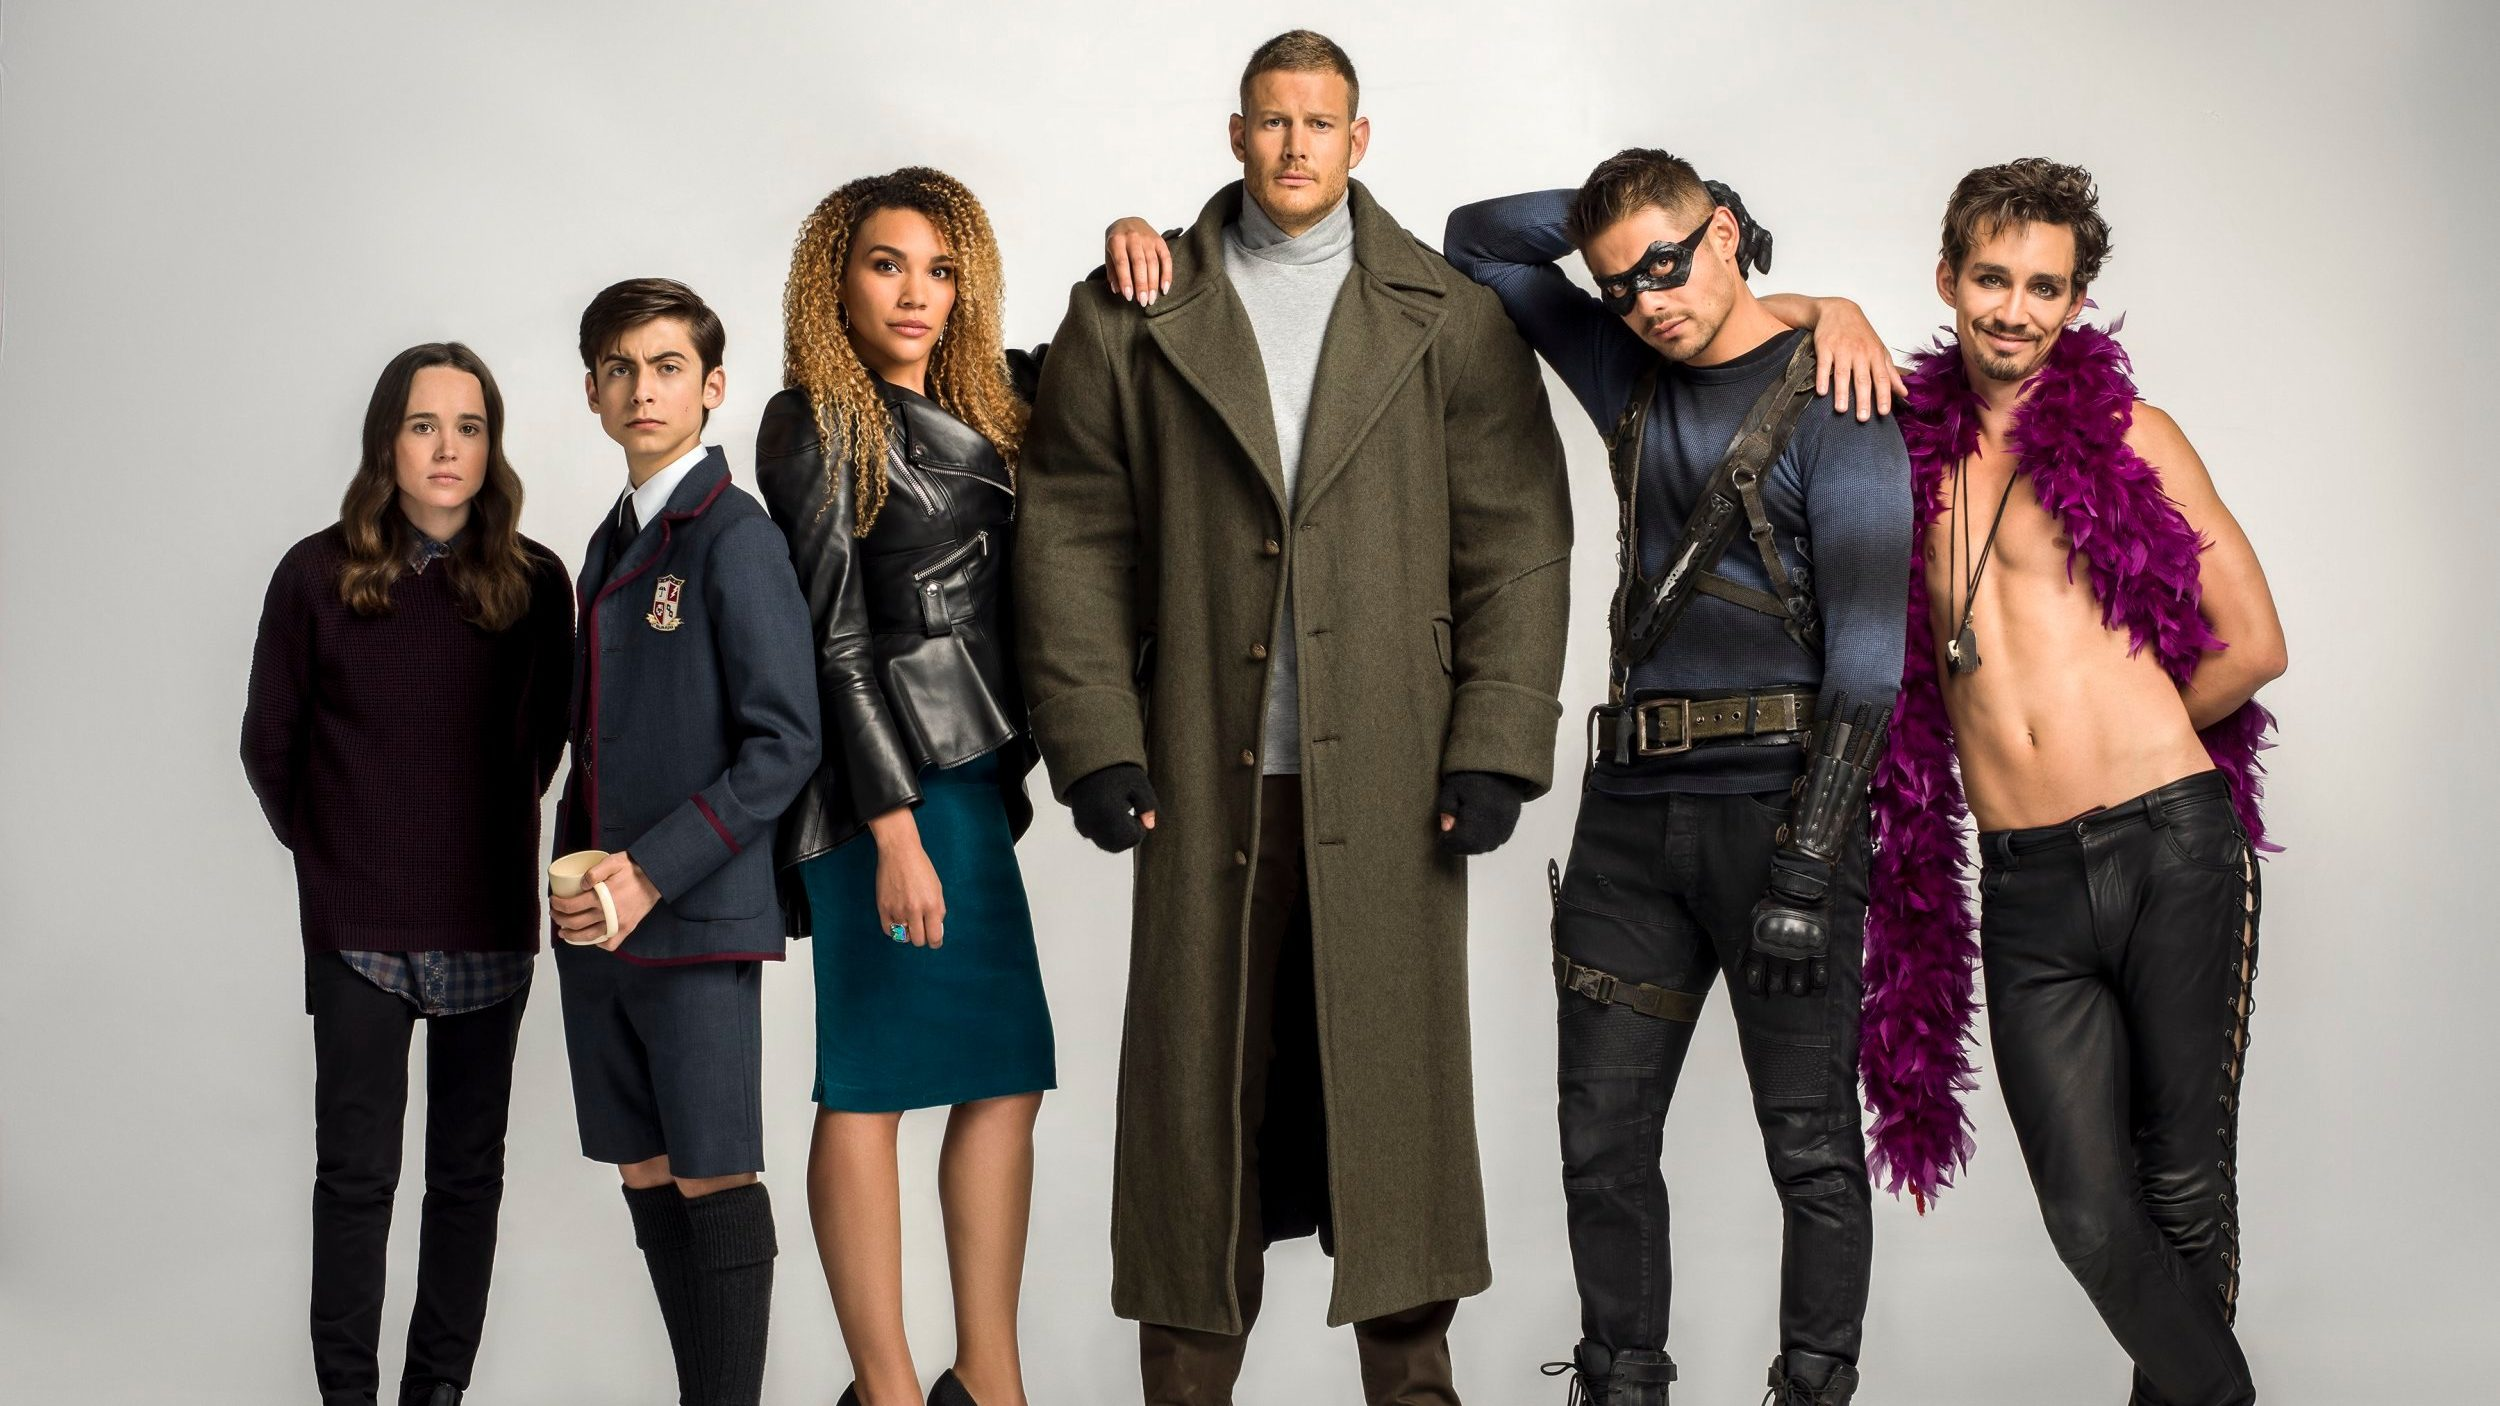 The Umbrella Academy season 2 Netflix release date